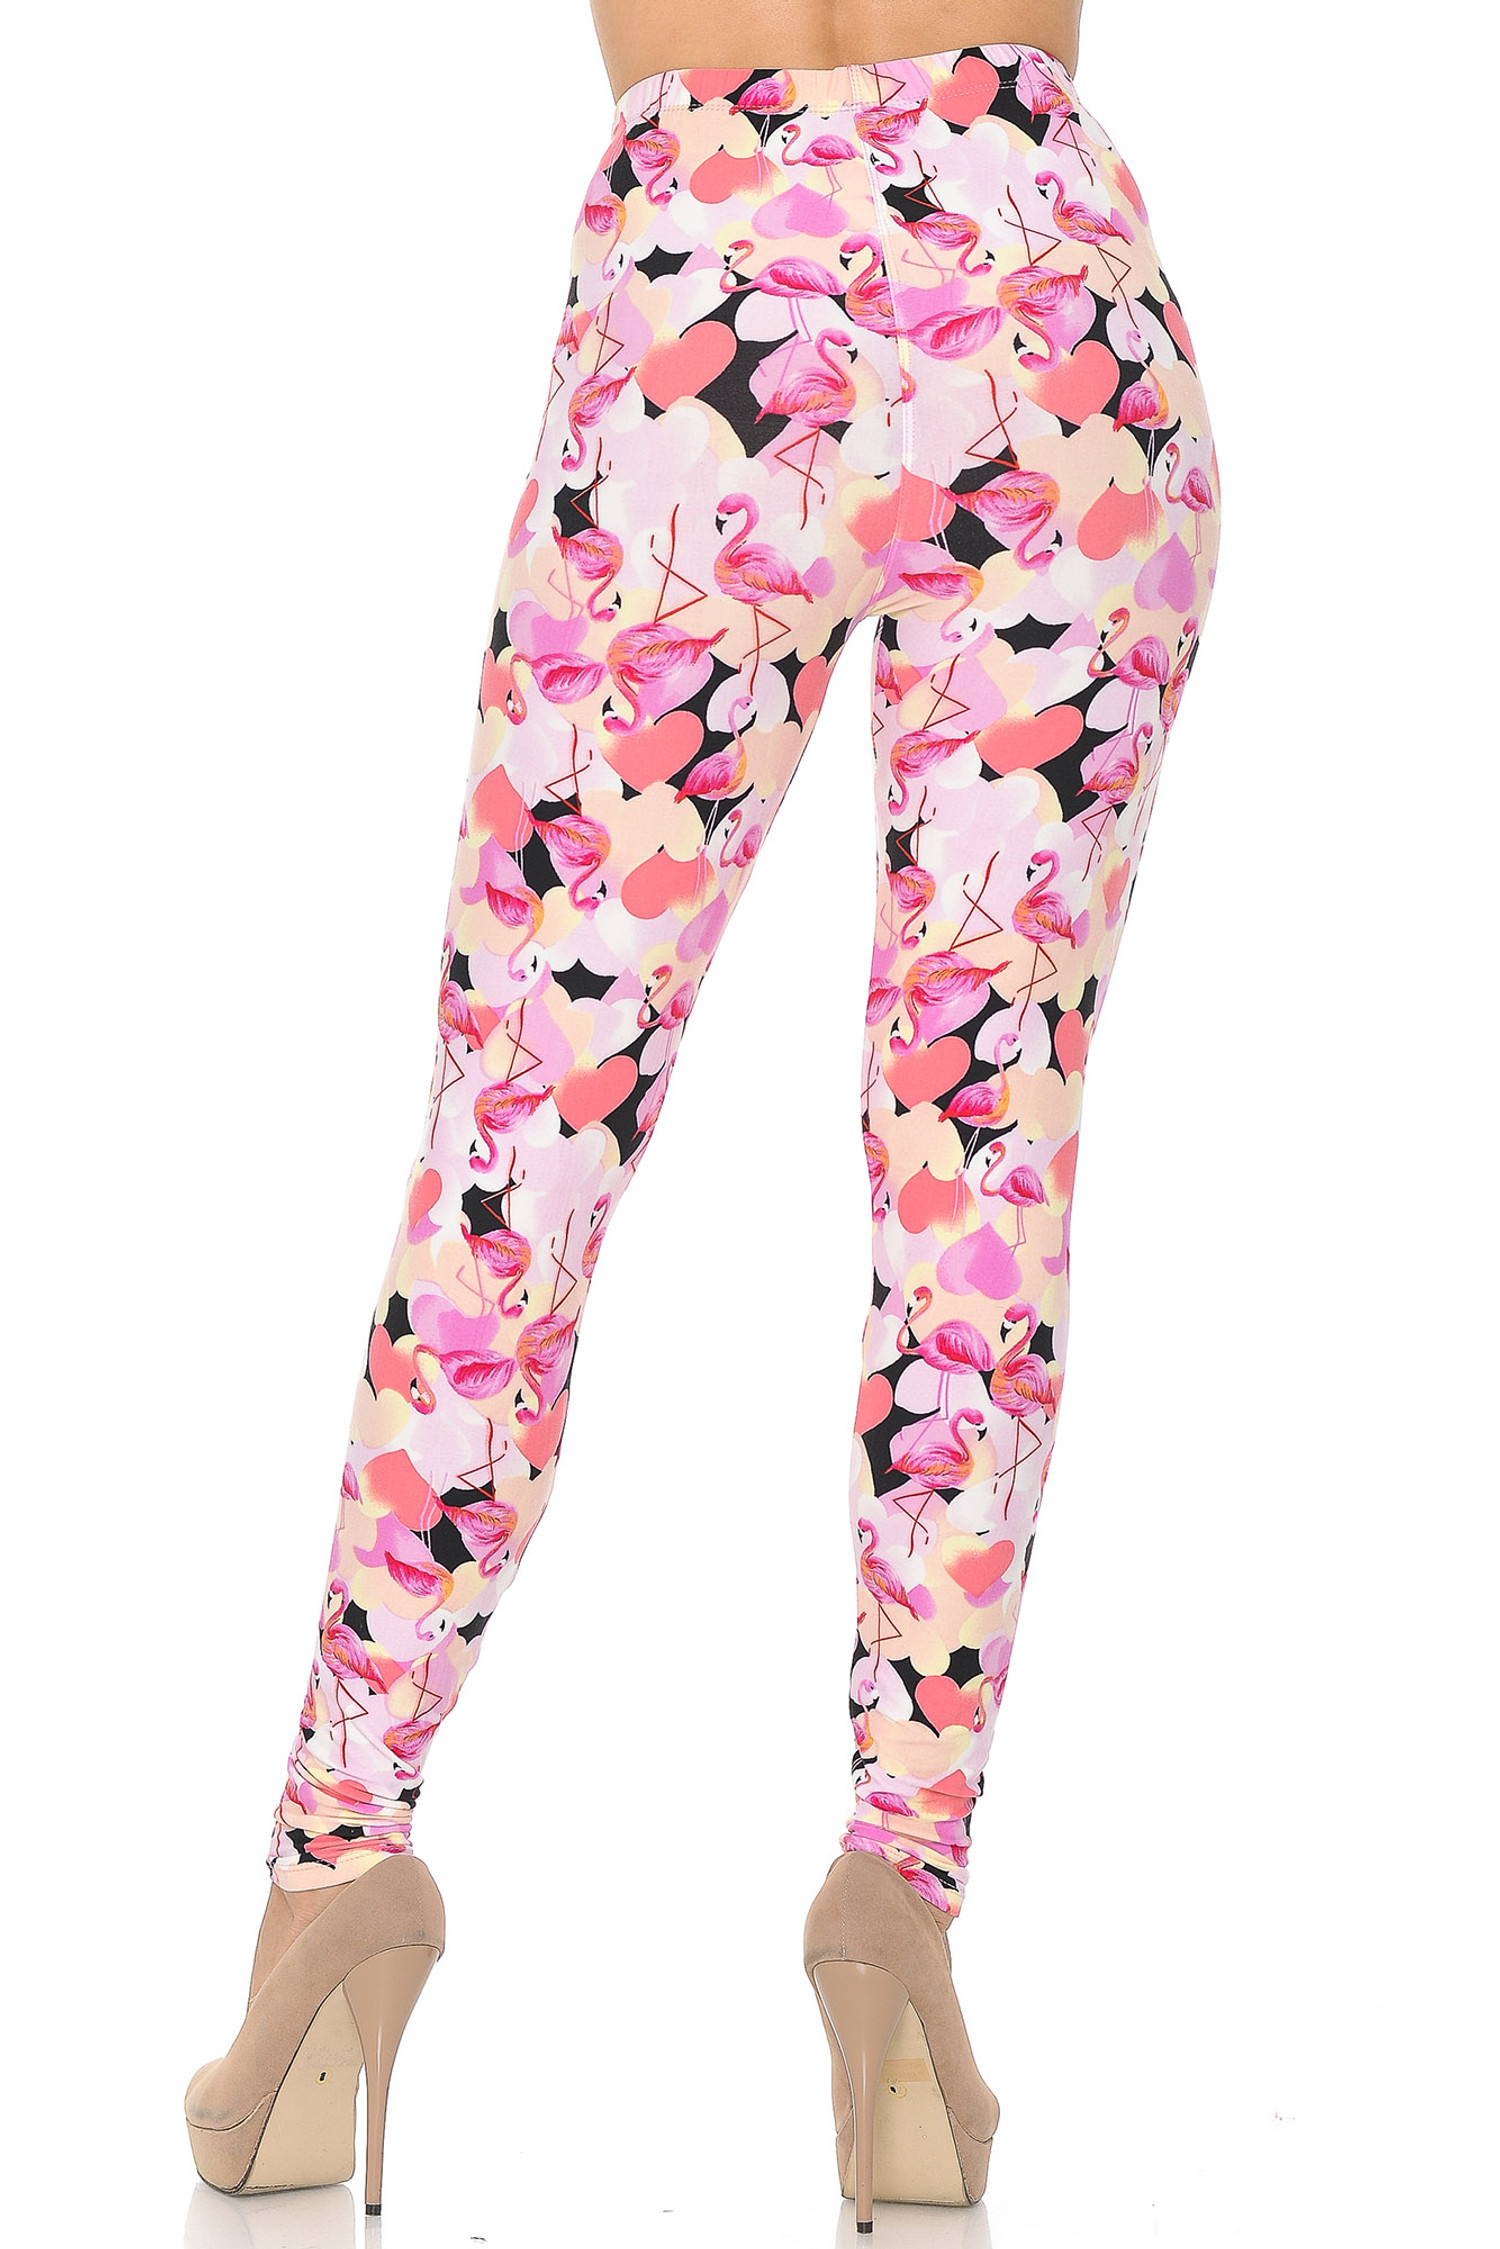 Soft Brushed Gorgeous Pink Flamingos Leggings